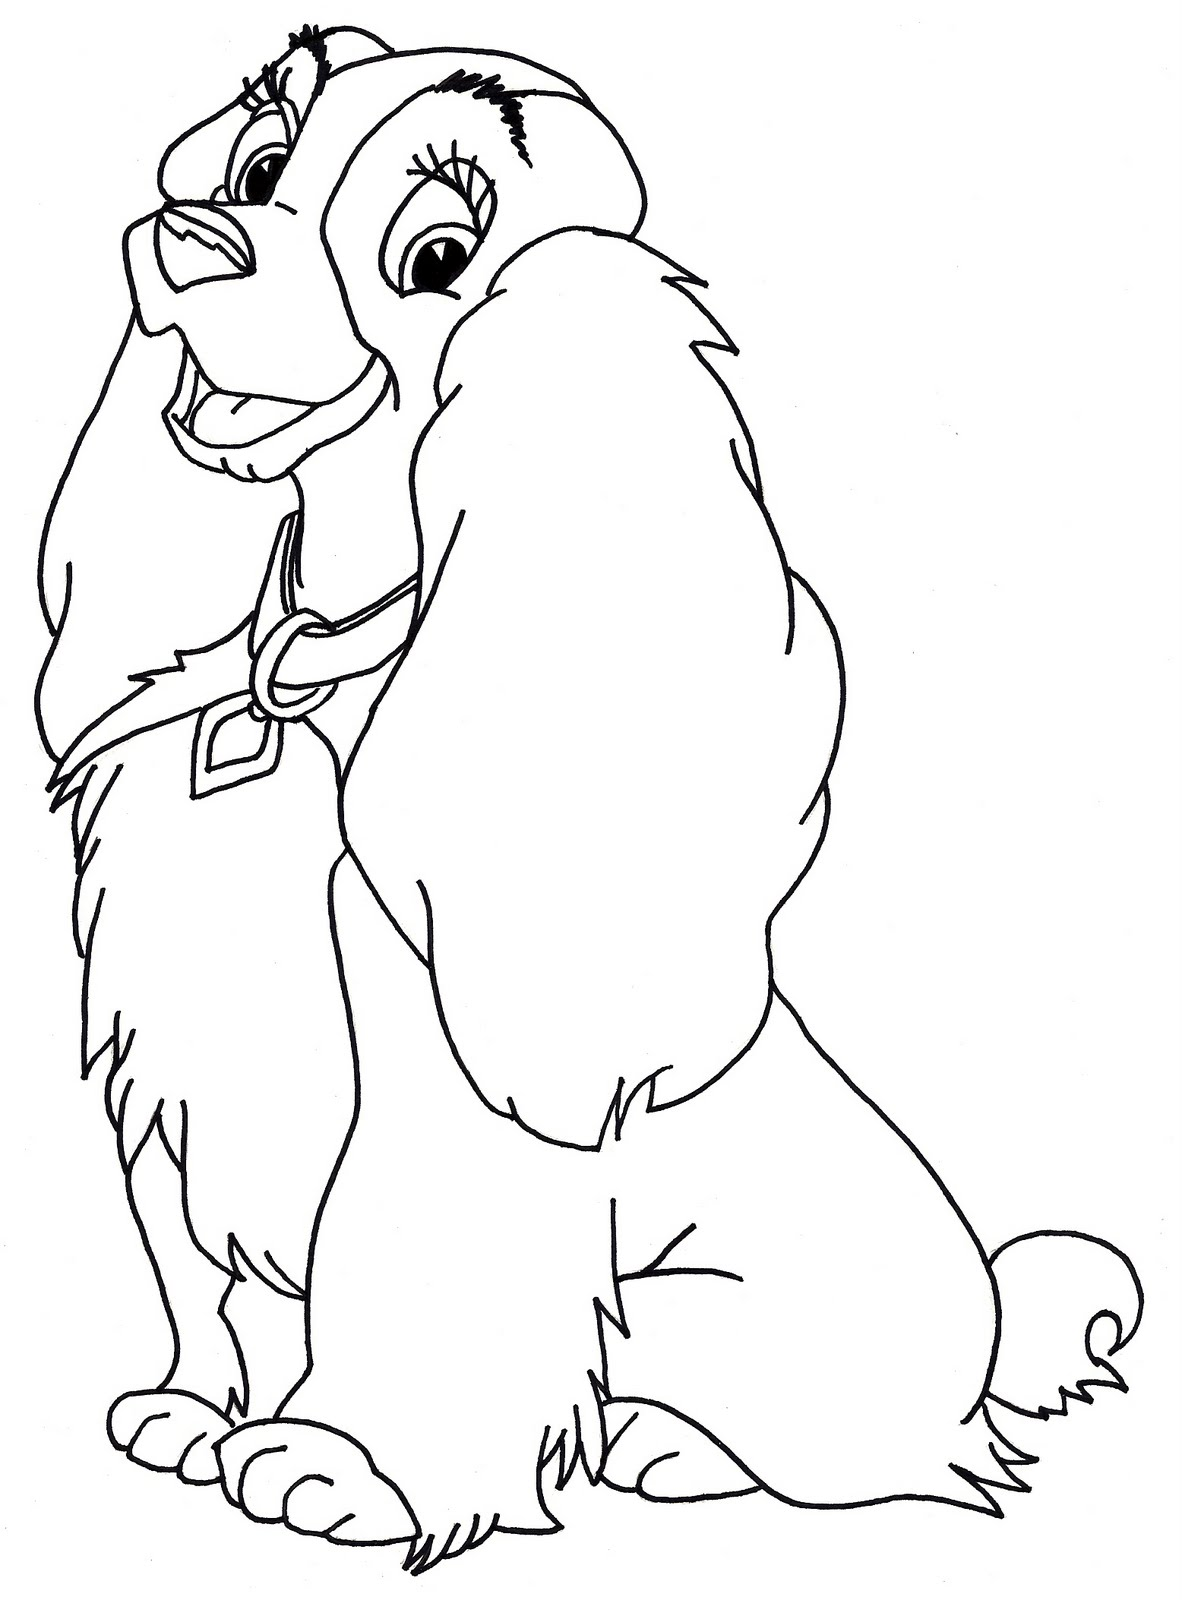 lady the tramp coloring pages - photo#6